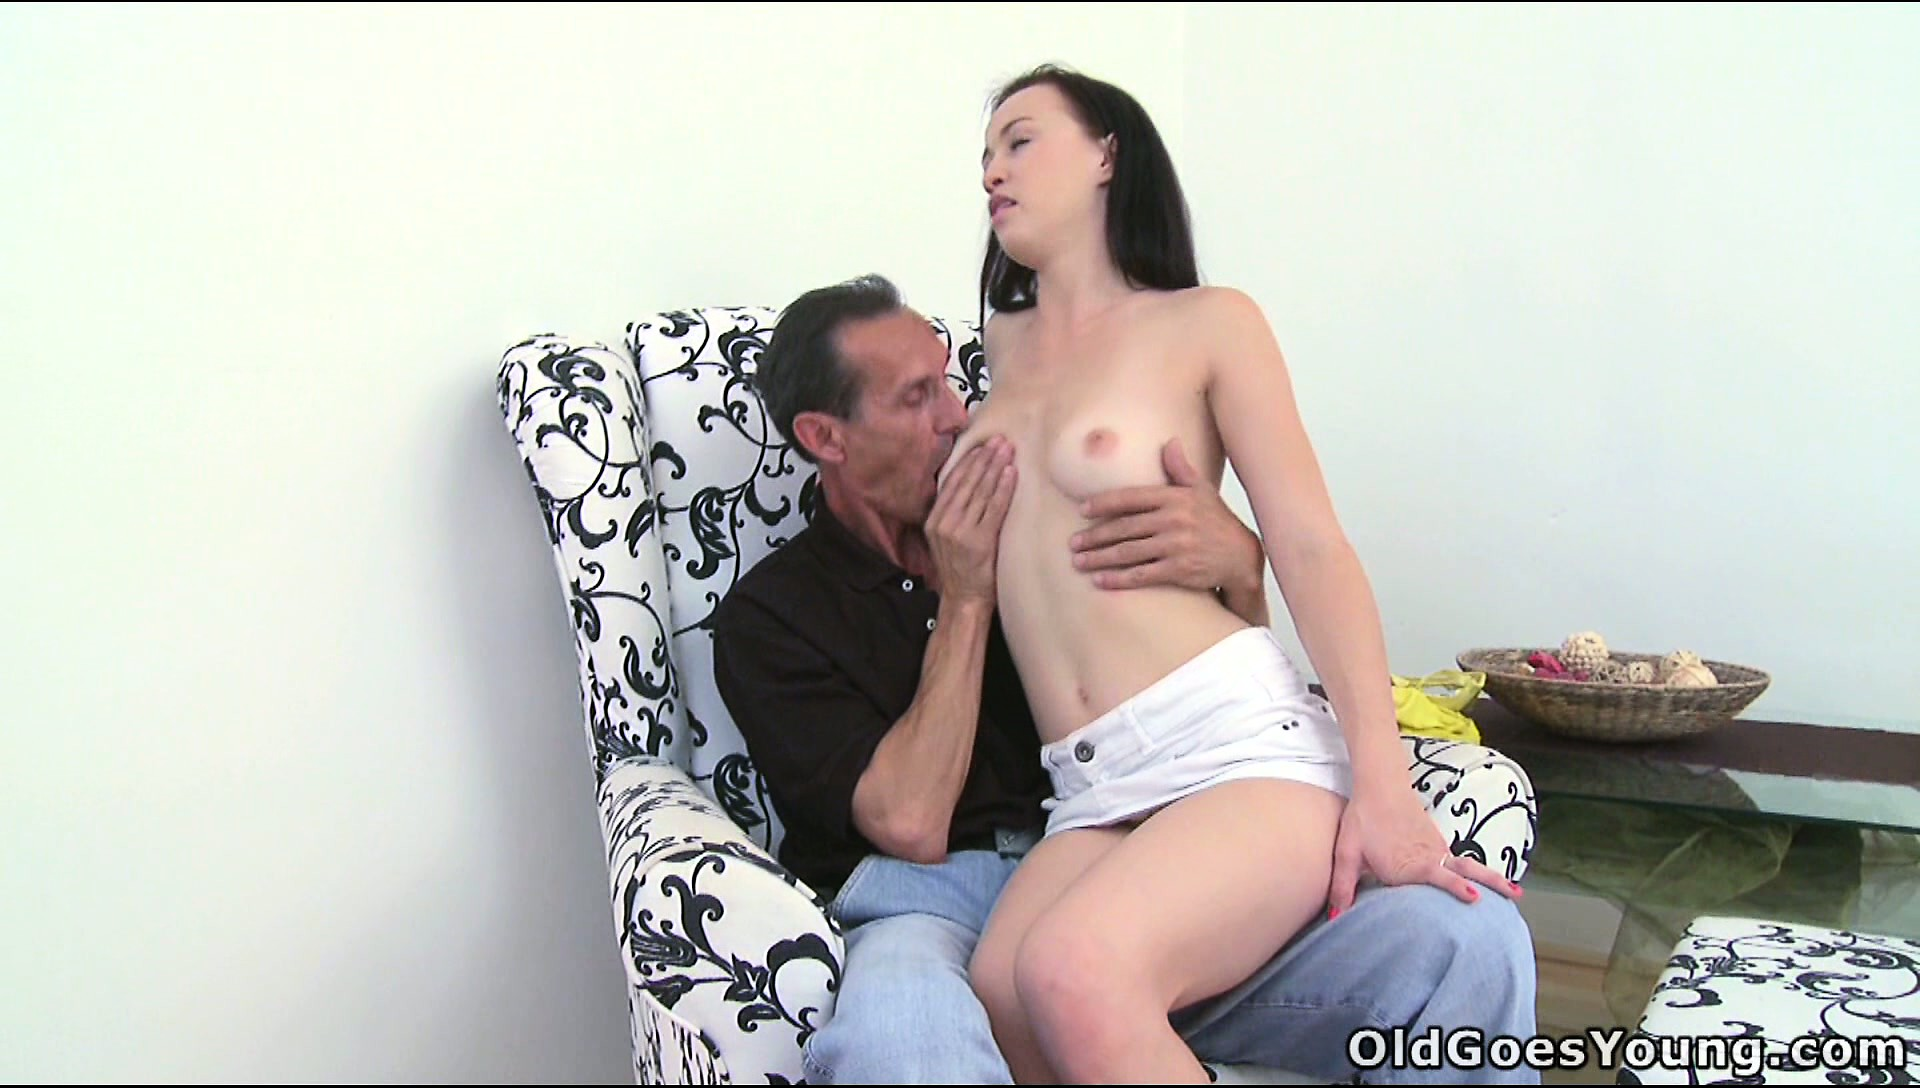 Porn Tube of Teen Sits On A Raunchy Grandpa's Lap And Gets Her Tits Sucked On